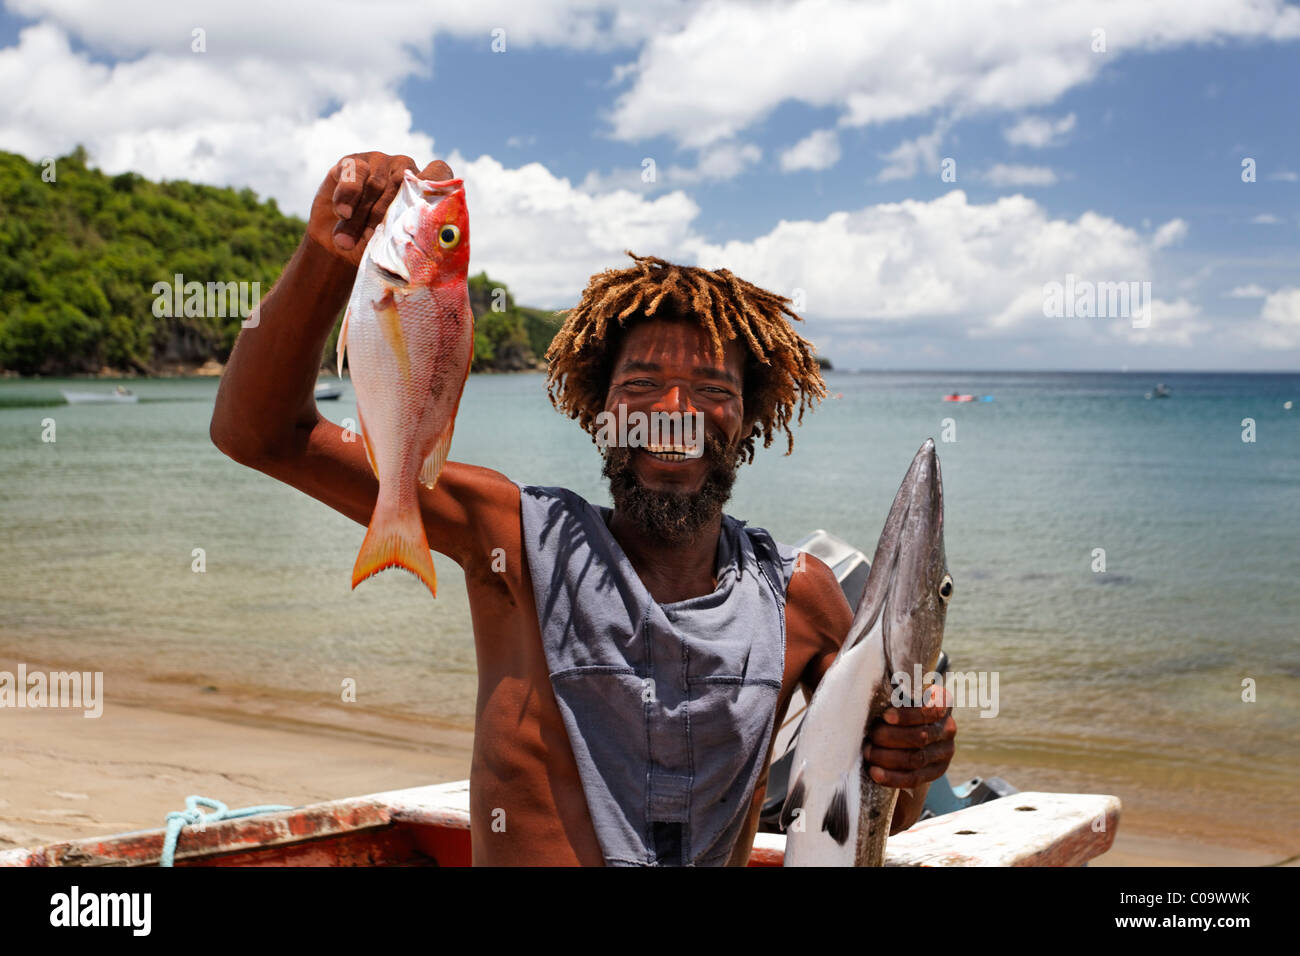 Saint Lucian fisherman proudly showing his catch of the day, Barracuda (Spyraena barracuda) and Red Snapper (Lutjanus - Stock Image